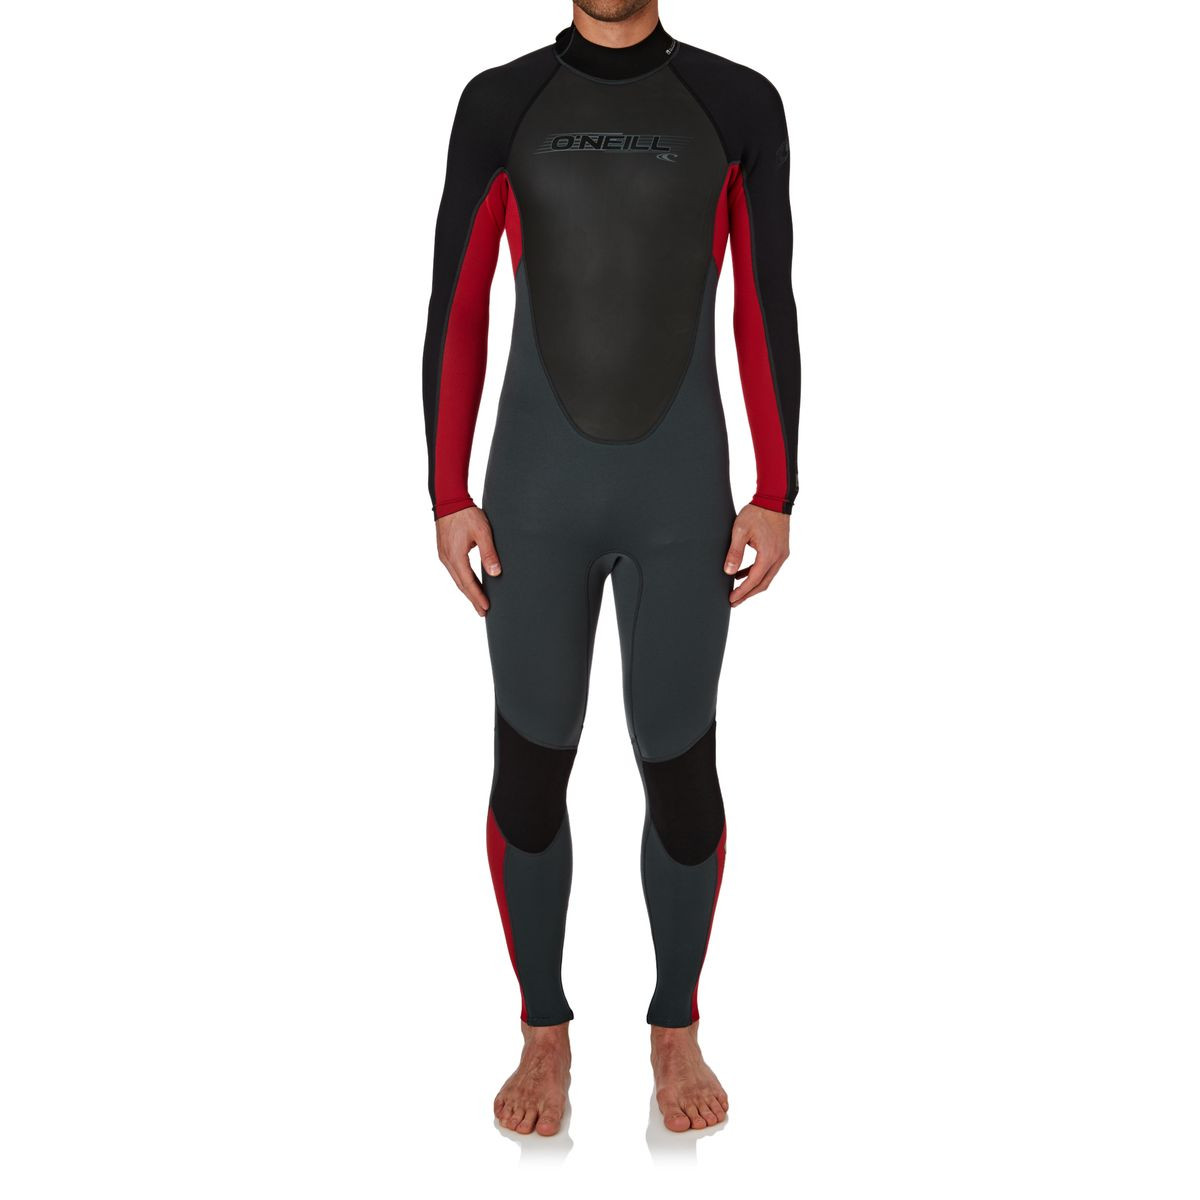 O'Neill Reactor 3/2mm 2017 Back Zip Wetsuit - Graphite/ Red/ Black